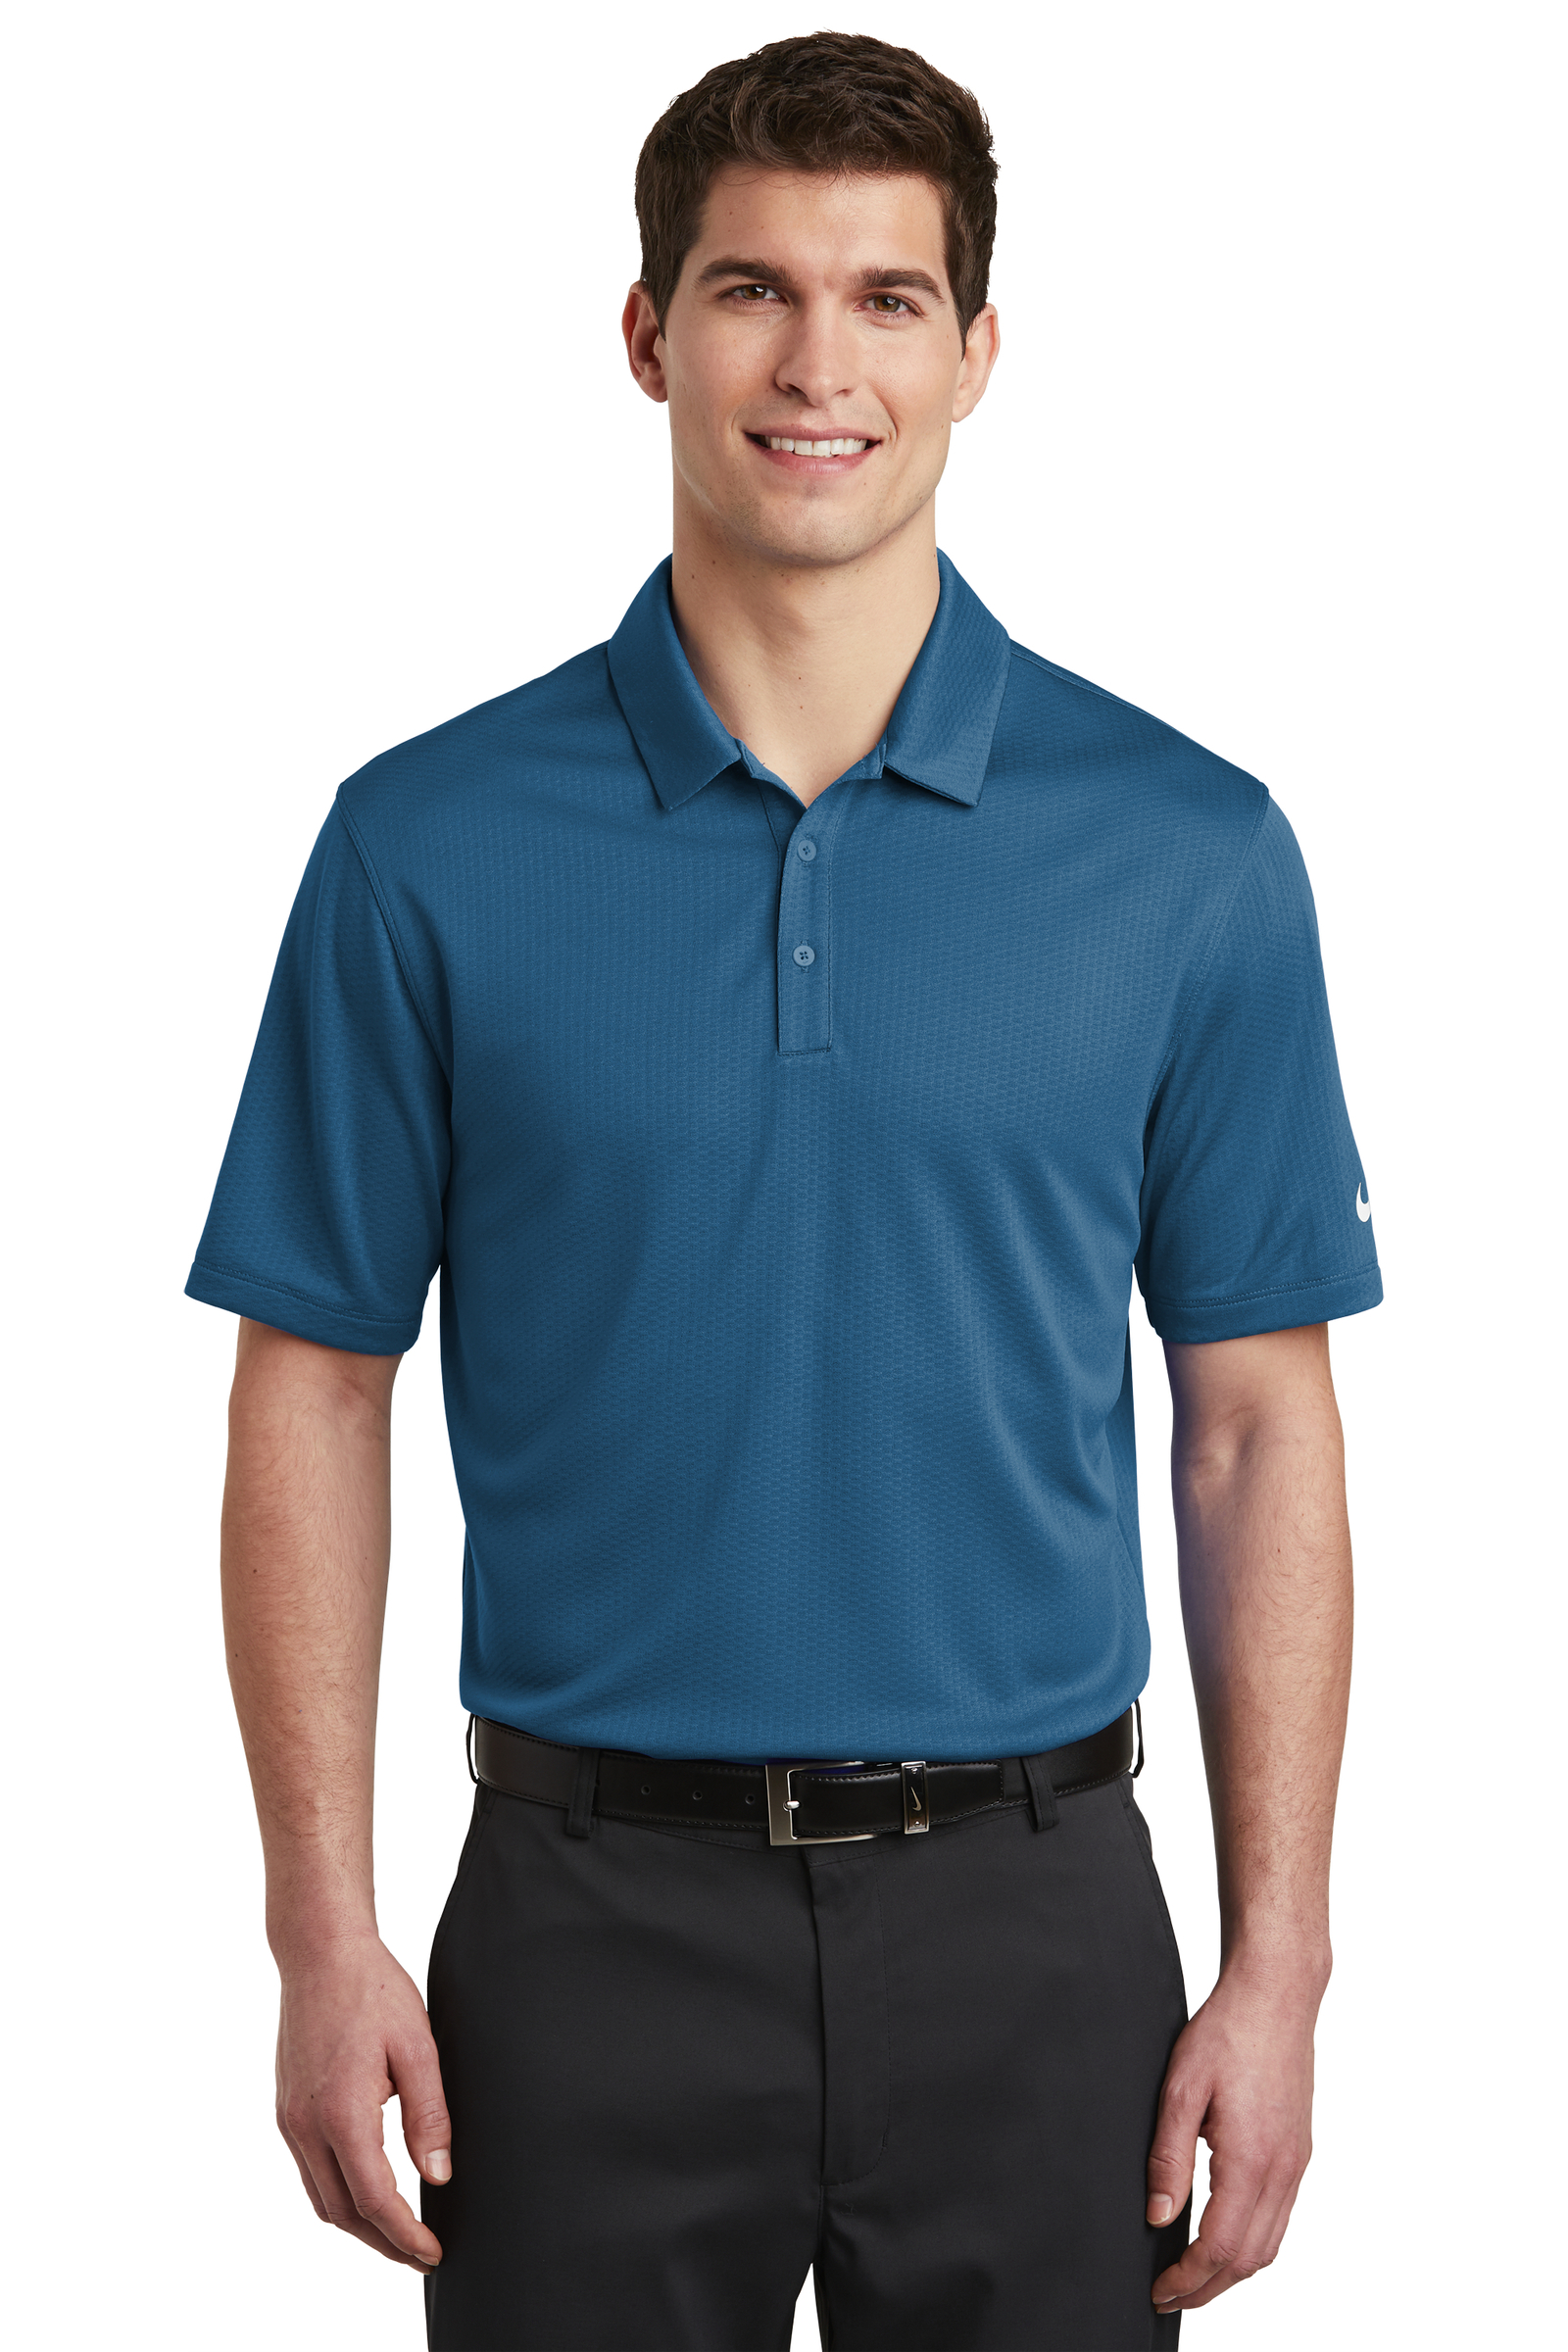 Nike Embroidered Men's Dri-FIT Hex Textured Polo